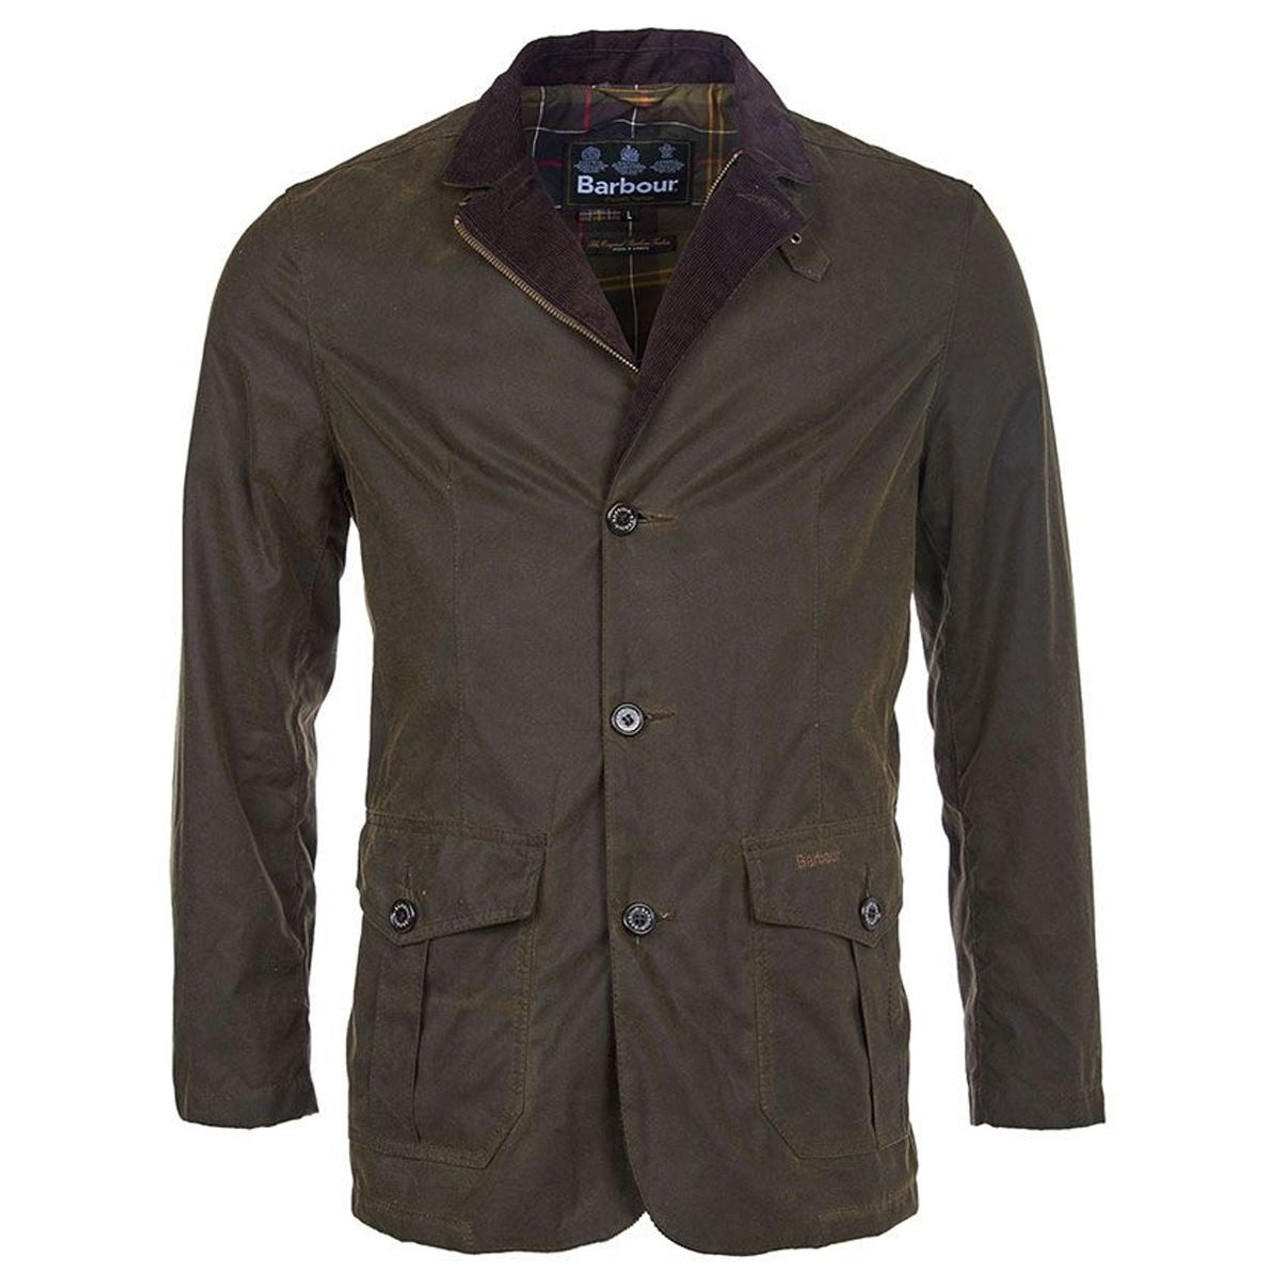 Barbour Mens Lutz Wax Jacket